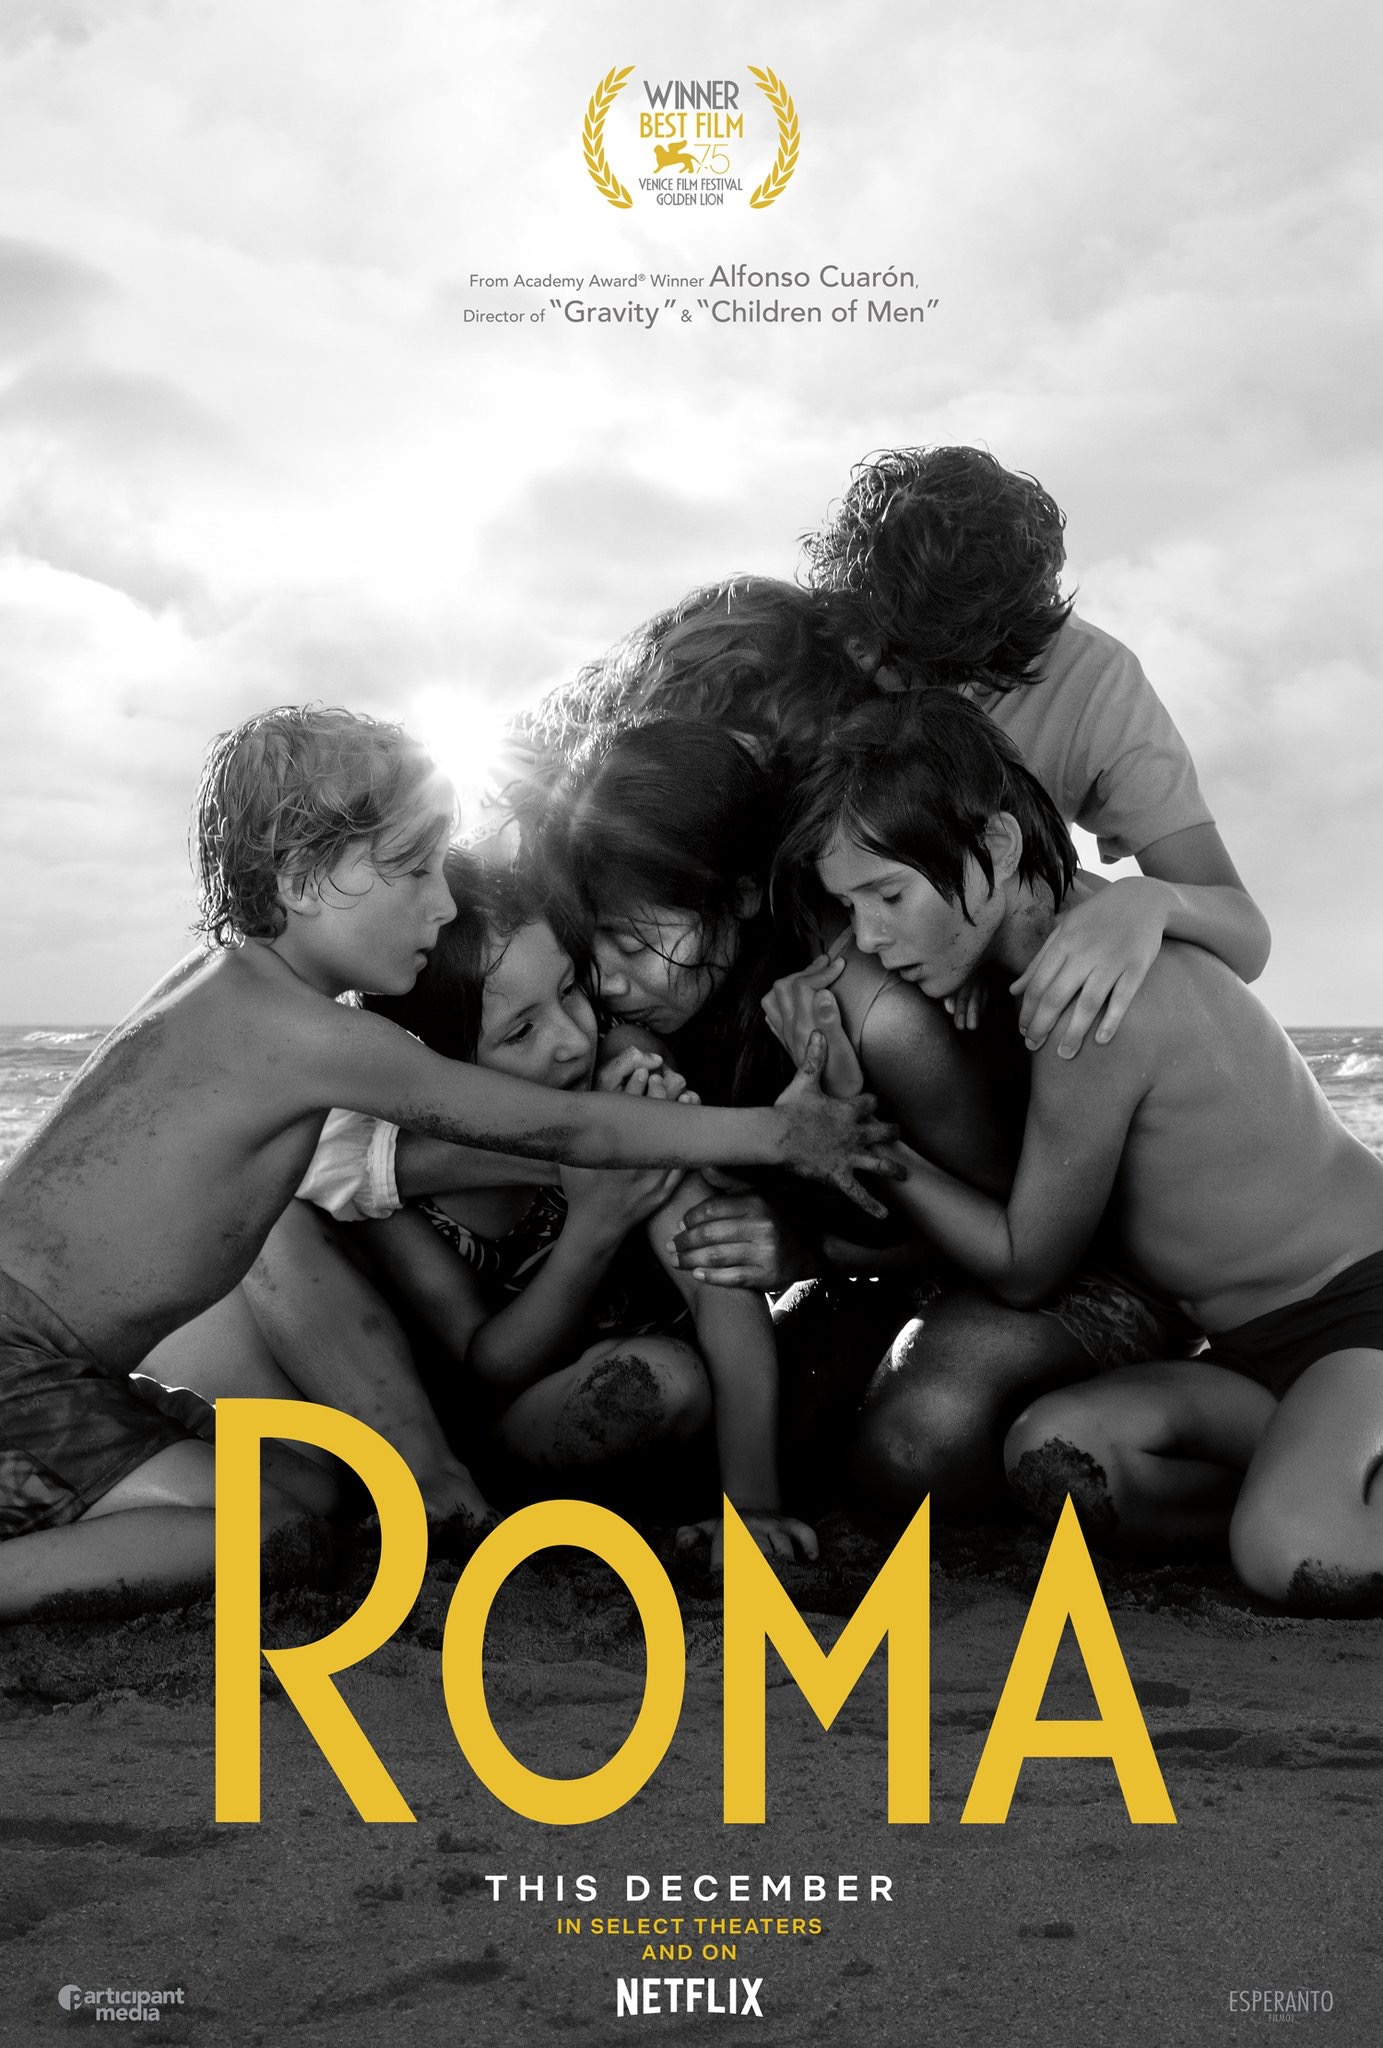 Review of Roma - by Kathia WoodsRoma is the latest offering from academy award winning director Alfonso Cuaron. It's a retrospective on his childhood in Mexico.At the heart of the story are two women Cleo and Sofia. Cleo is a quiet but dedicated housekeeper while Sofia is the lady of the house married to a successful doctor and mother of four.On paper, these two women don't have anything in common. We soon discover this to be untrue.Roman is shot beautifully in black and white setting a warm tone from the first frame to the last.Many of us of Latin American decent know these women; these women are our grandmothers, mothers, aunts, and sisters. We understand the patriarchy that raised them.As Latin women, we are raised to put others first, family over everything.You can see it in Cleo who left her home to be in service to someone else. Sofia's children are rendered with affection as if they were her own. She knows their likes and dislikes, she taught them how to pray and they, in turn, rely on her for everything.Sofia is a woman who gave up her career to become a wife. She dedicated her life to uplift and supports her husband.What I love about Roma is how Cuaron chose to display how each woman handles heartbreak.Cleo who is beautifully portrayed by first-time actress Yalitza Aparicio gives an unforgettable performance. You are rooting for her at every turn. You want her to win because she's a decent person. Herr performance is so great because of the subtleties.Her strength permeates in the quiet moments for example when she is standing in front of the movie theater waiting for Fermin to return.Veteran actress Marina de Tavira is equally strong as Sofia.Here you have a highly successful professional woman begging for her husband's affection. She knows that their marriage is over but refuses to give up.Unlike Aparicio's character Cleo who's learned to internalized her, pain De Tavira gives raw emotion. From chasing after her husband to hysterically crying, Marina does